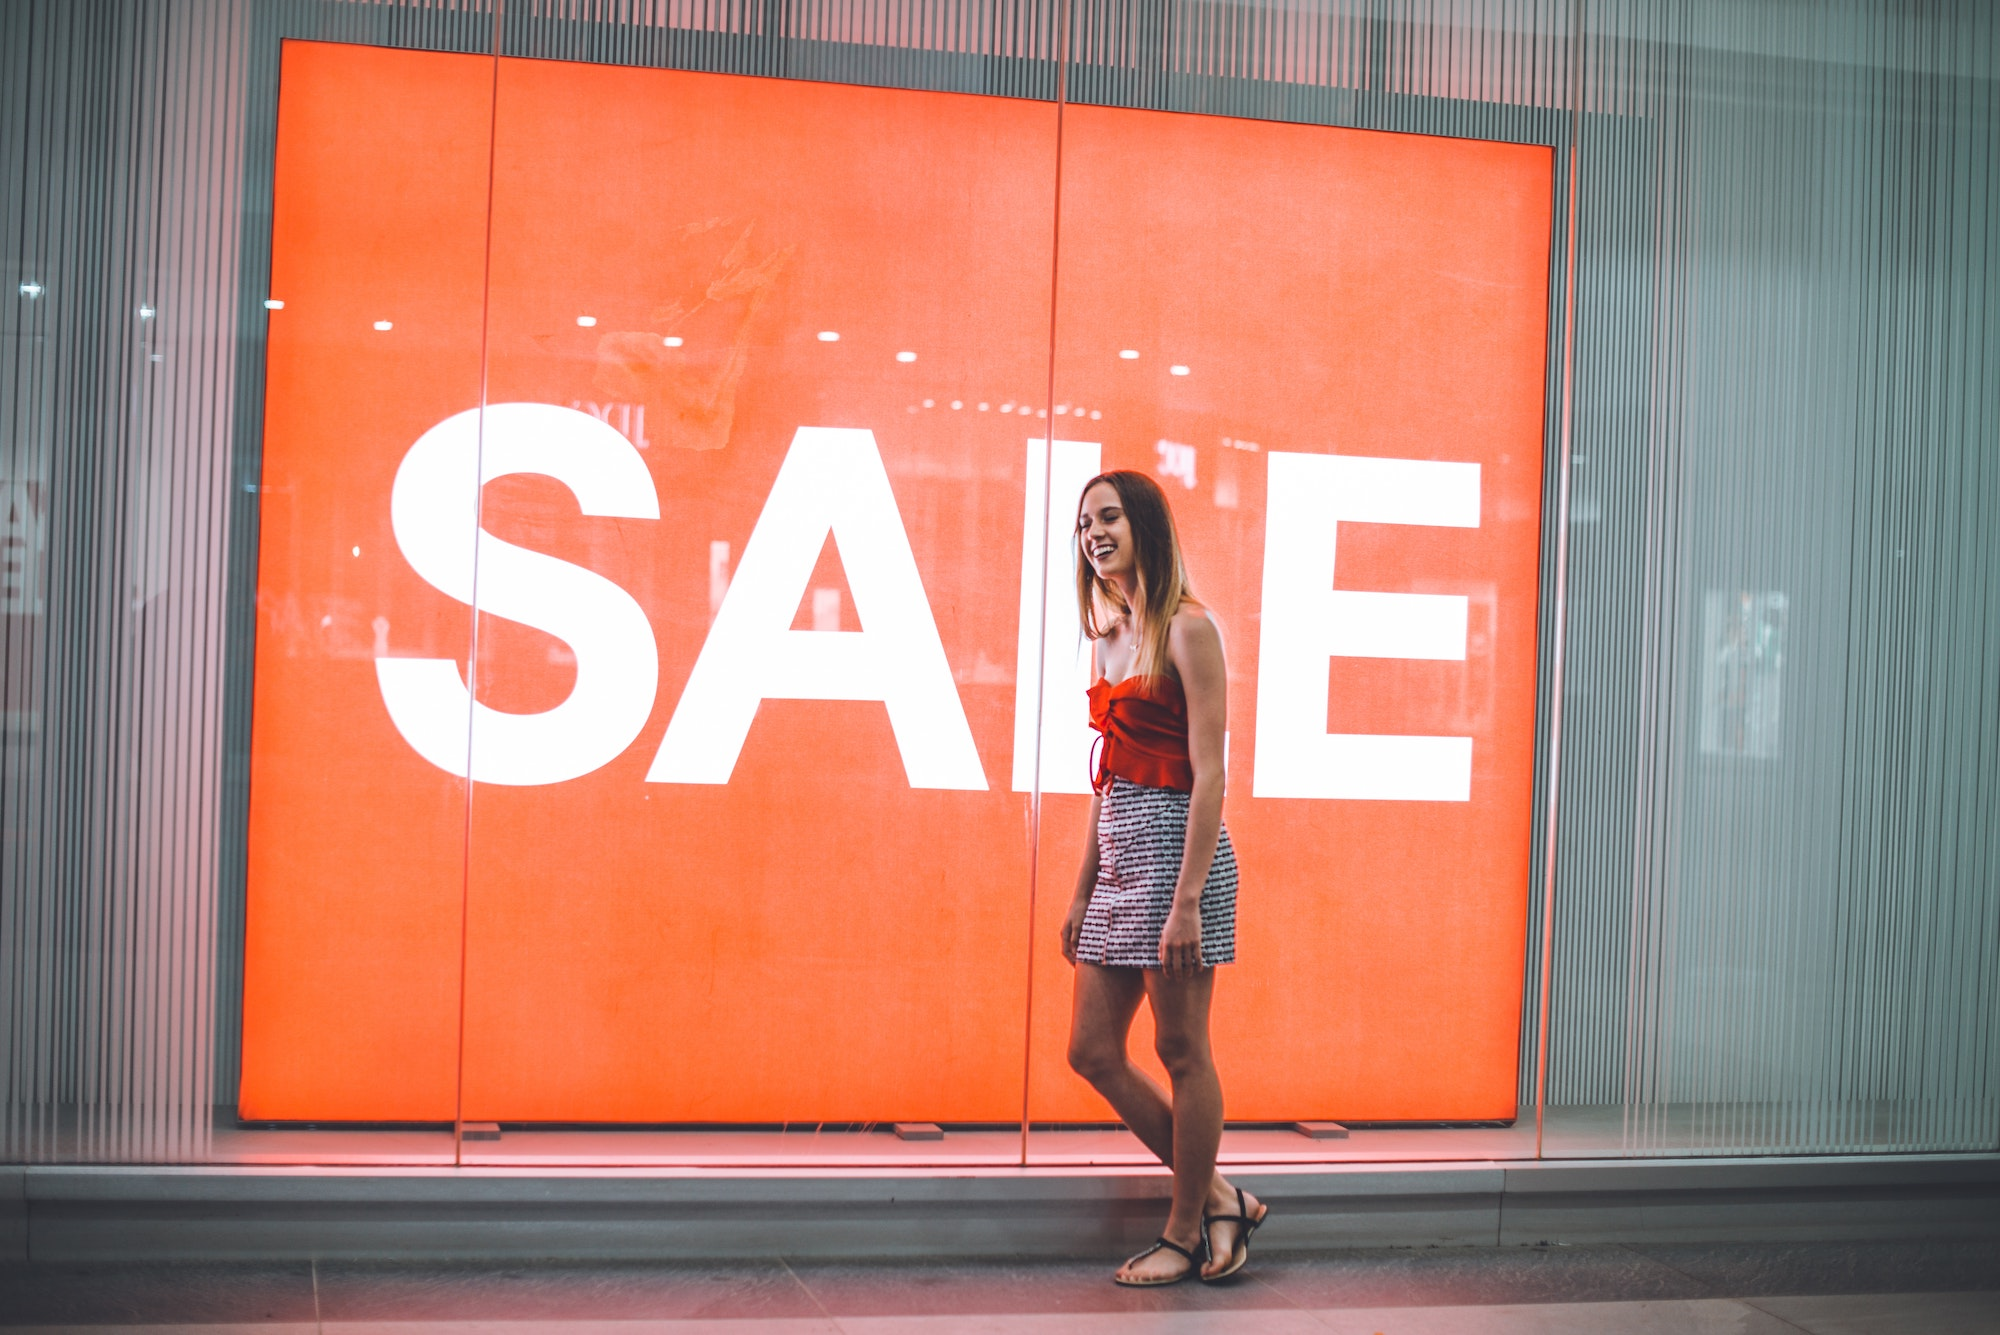 Thin girl smiling while leaning on a glass storefront that reads SALE and wearing a red tank top, checkered skirt, and black sandals